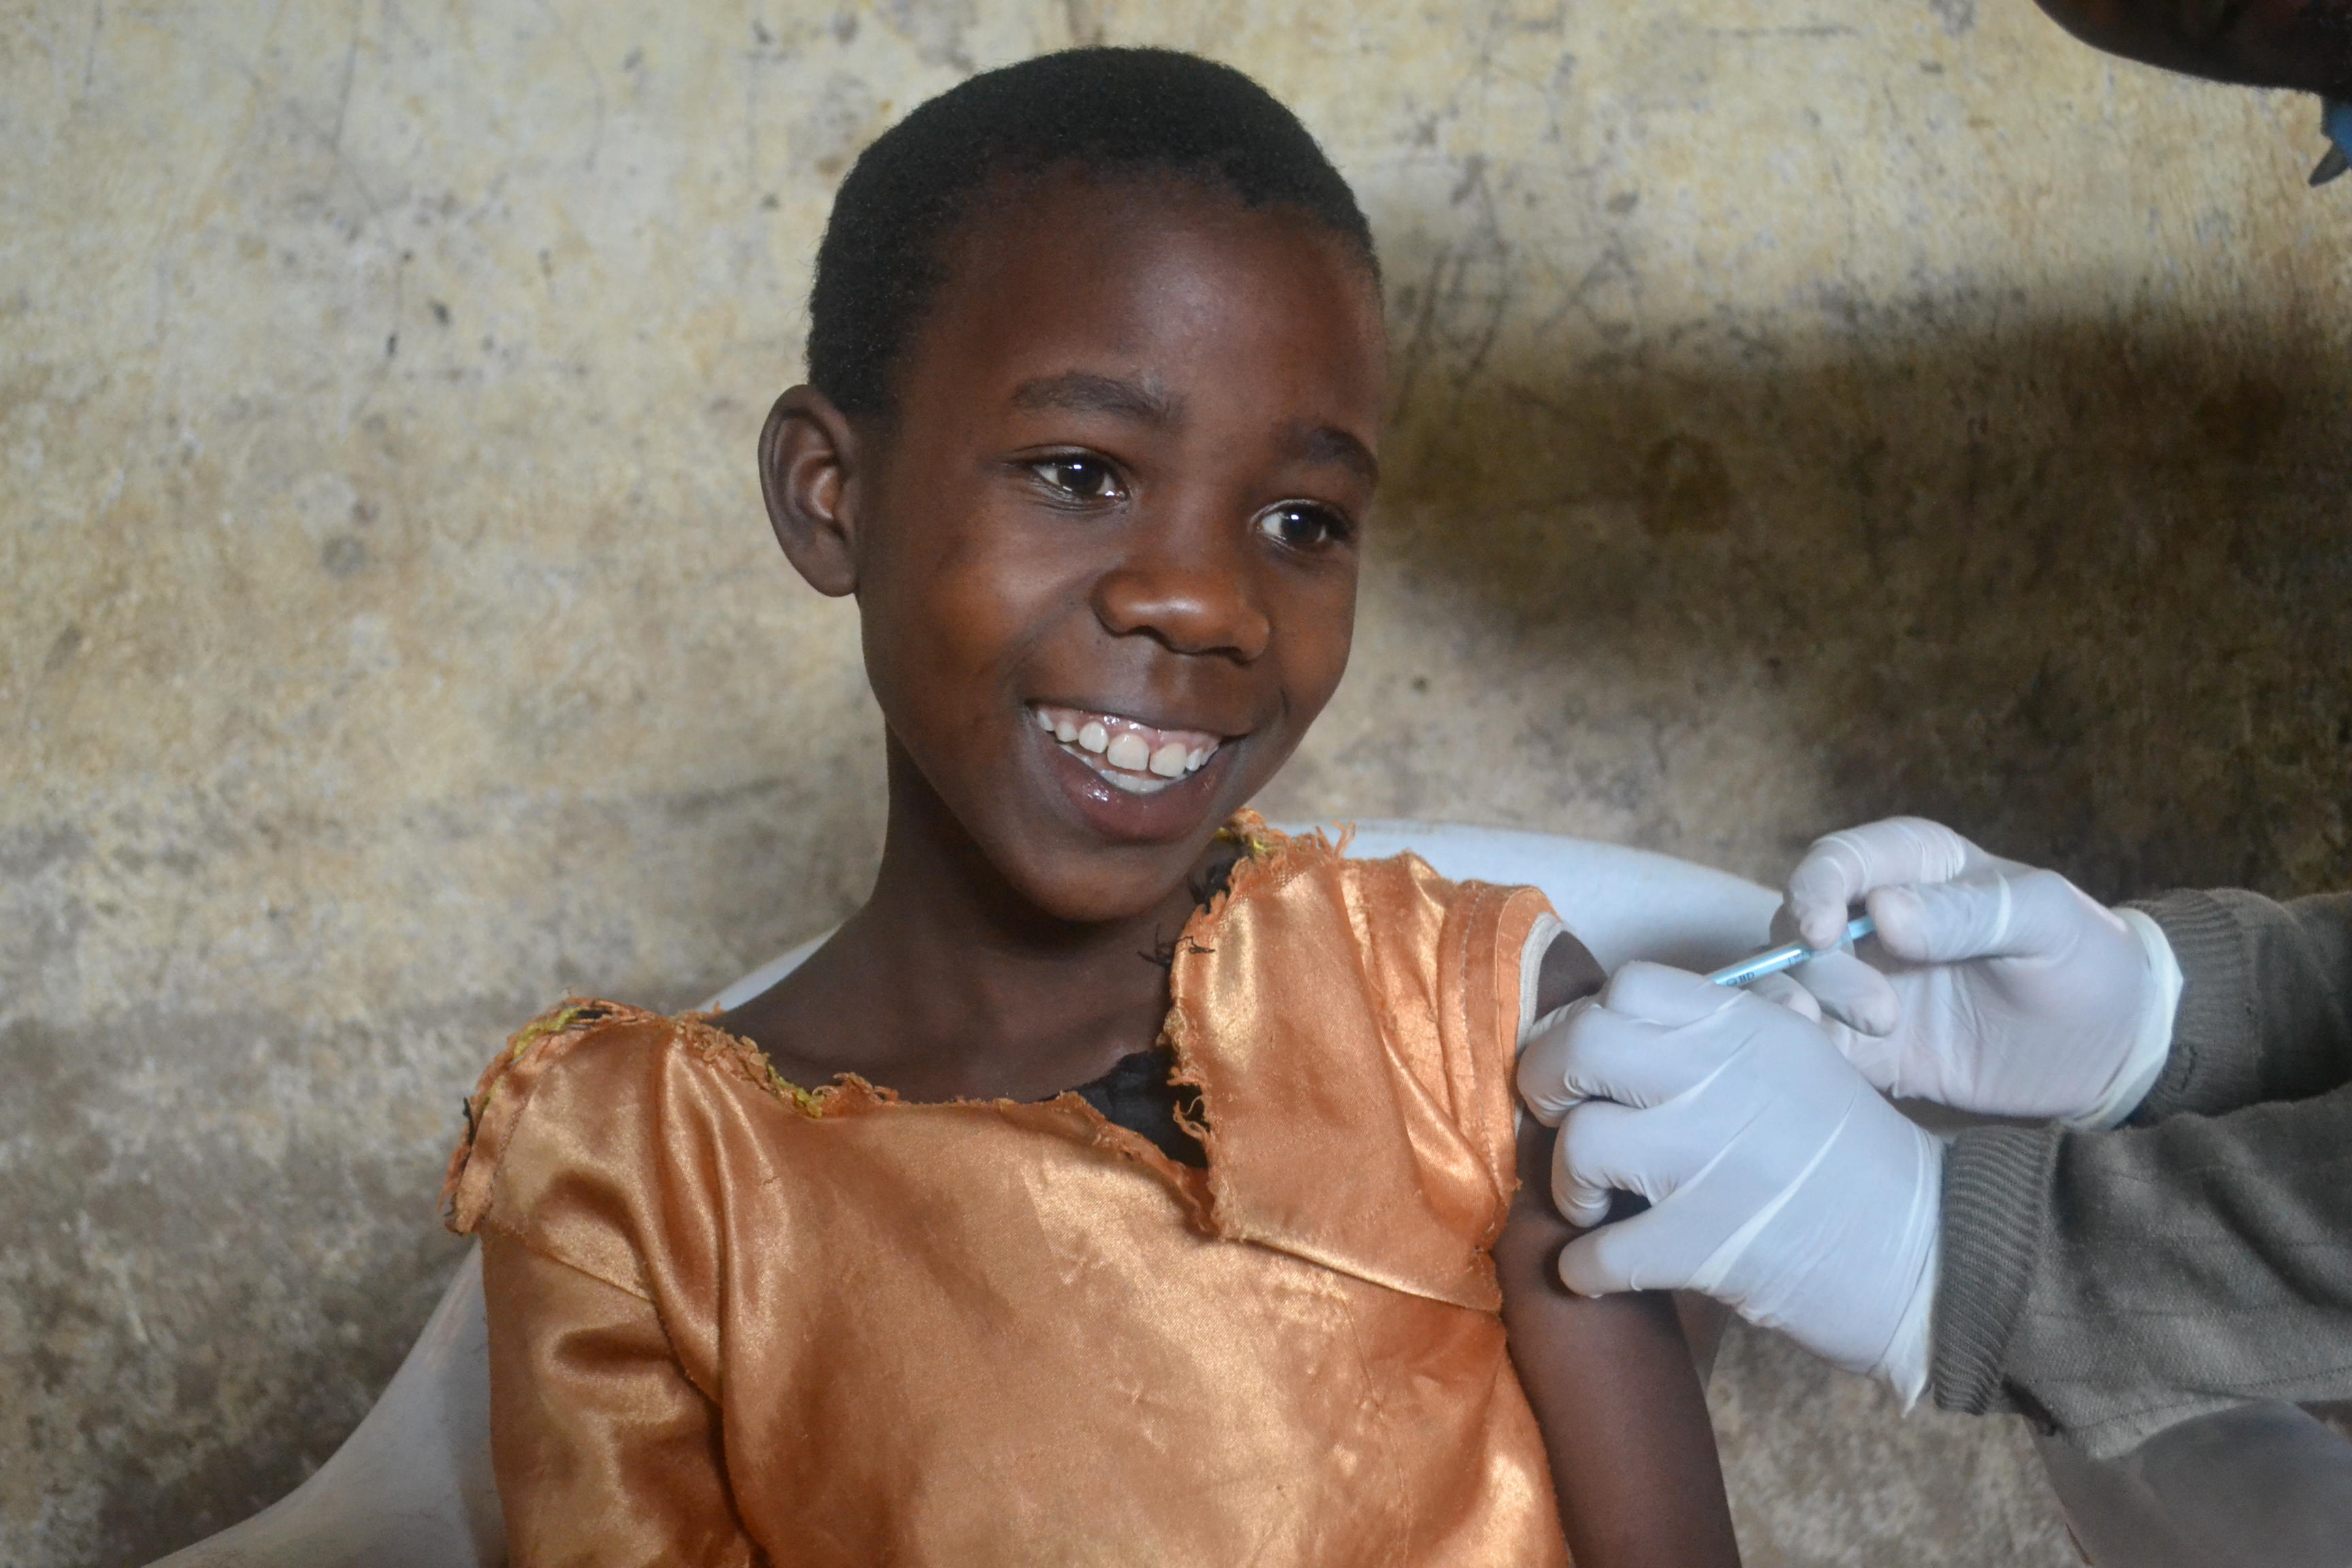 Vanessa, 9, receives her HPV vaccination at school. Chiradzulu District, Malawi.